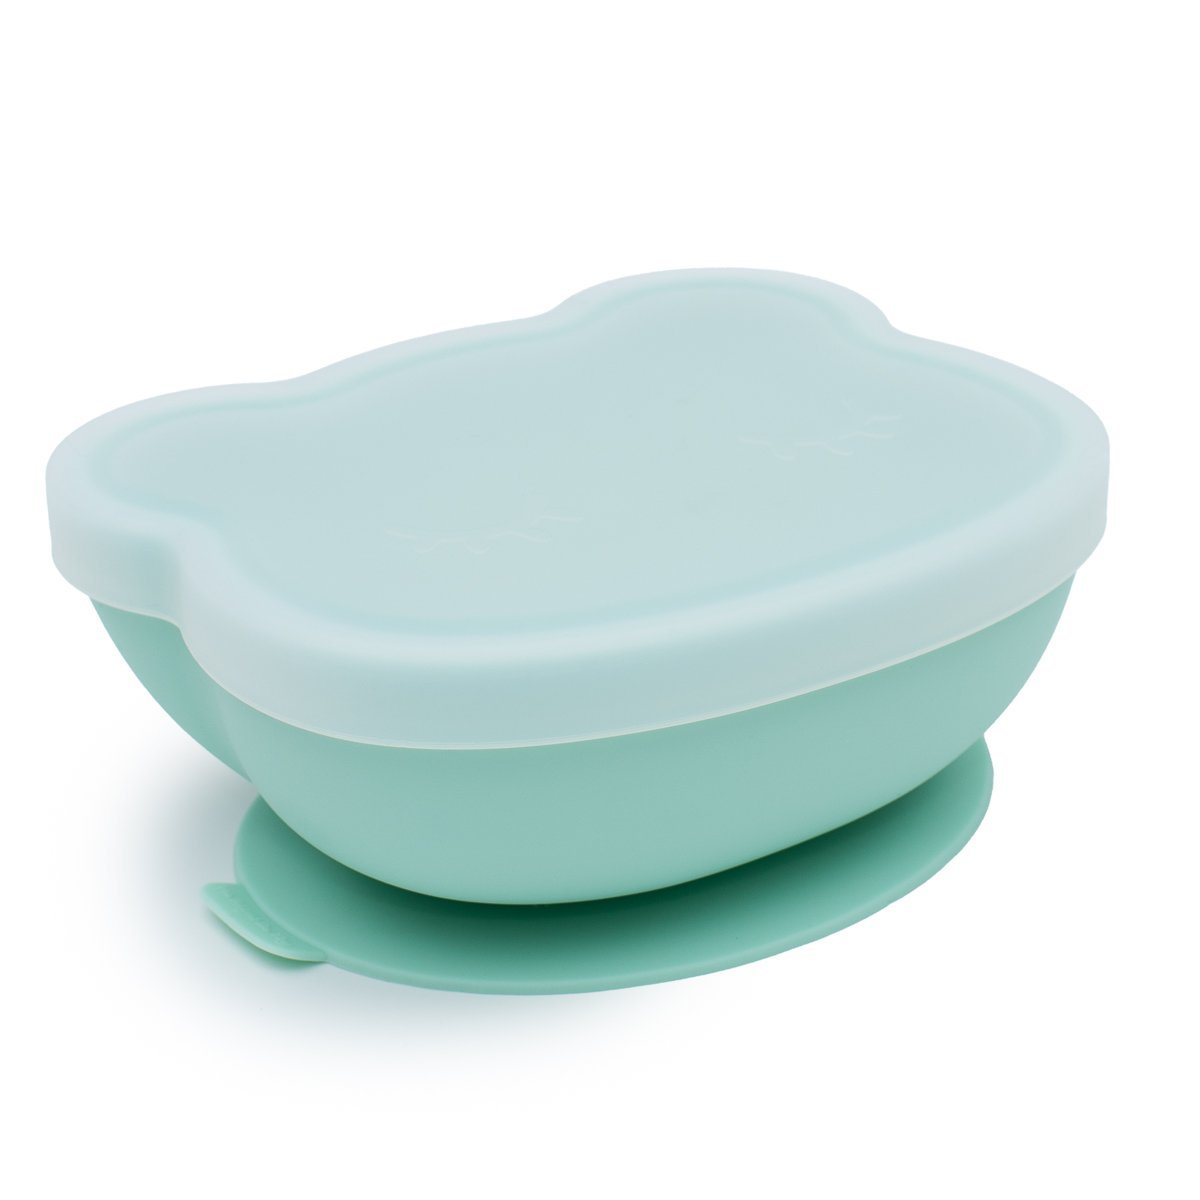 Stickie Bowl (Mint)